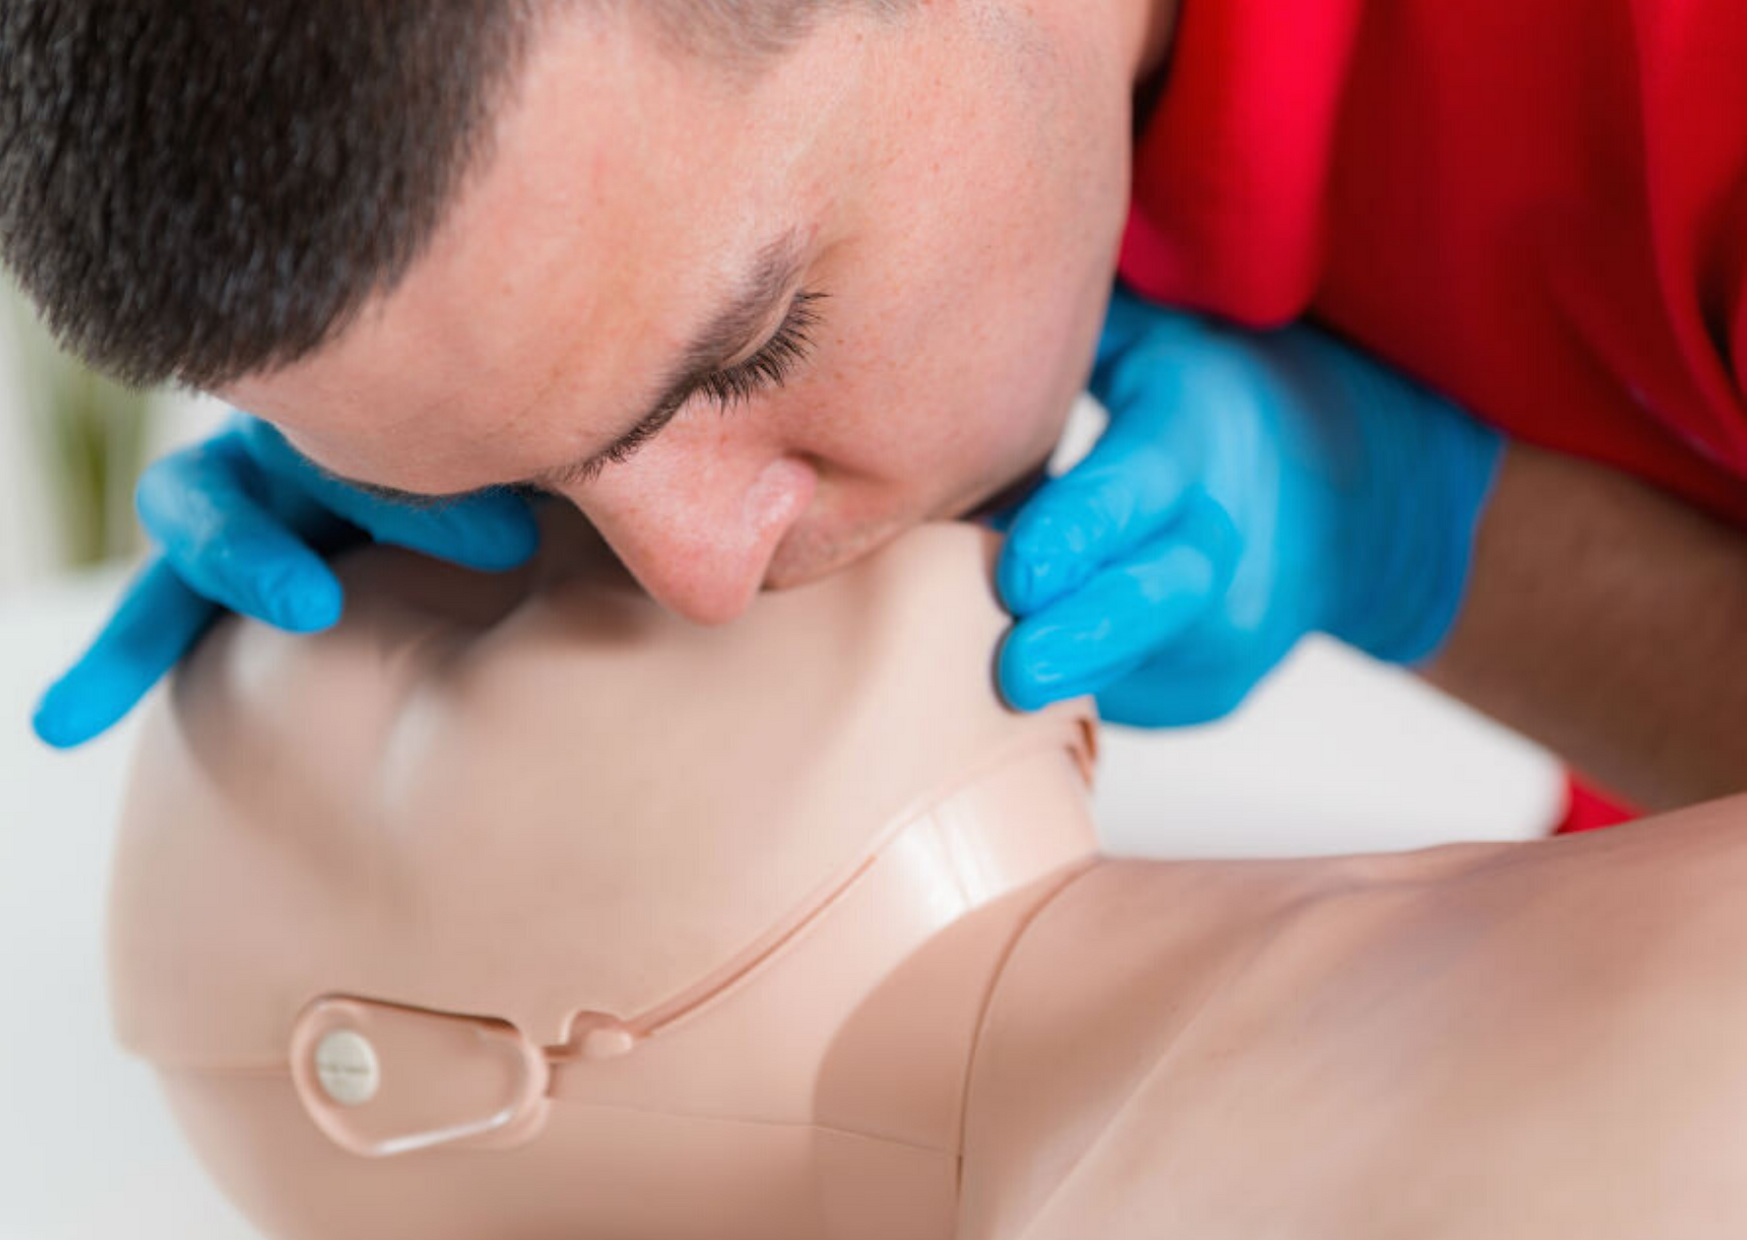 Become a first aider this February